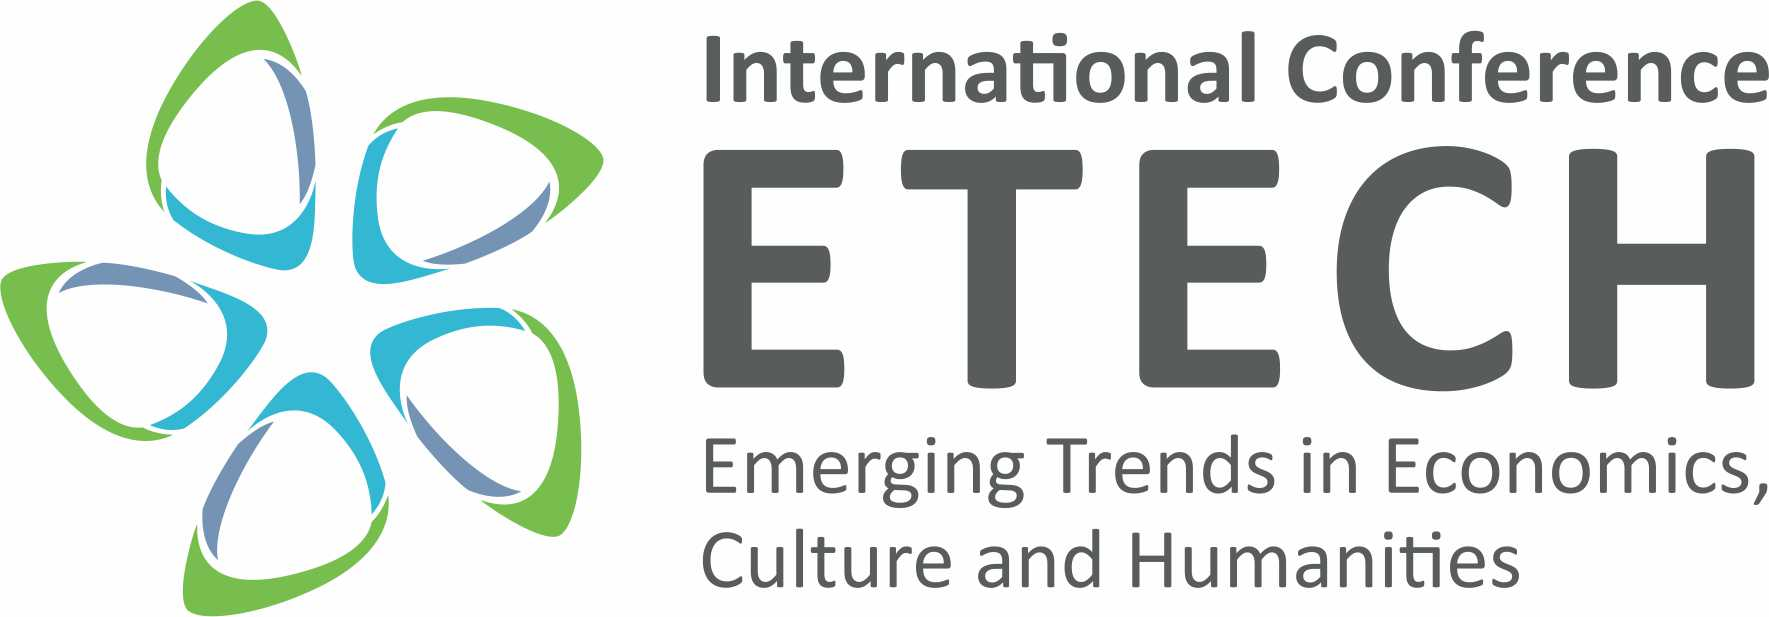 Emerging Trends in Economics, Culture and Humanities (etECH)